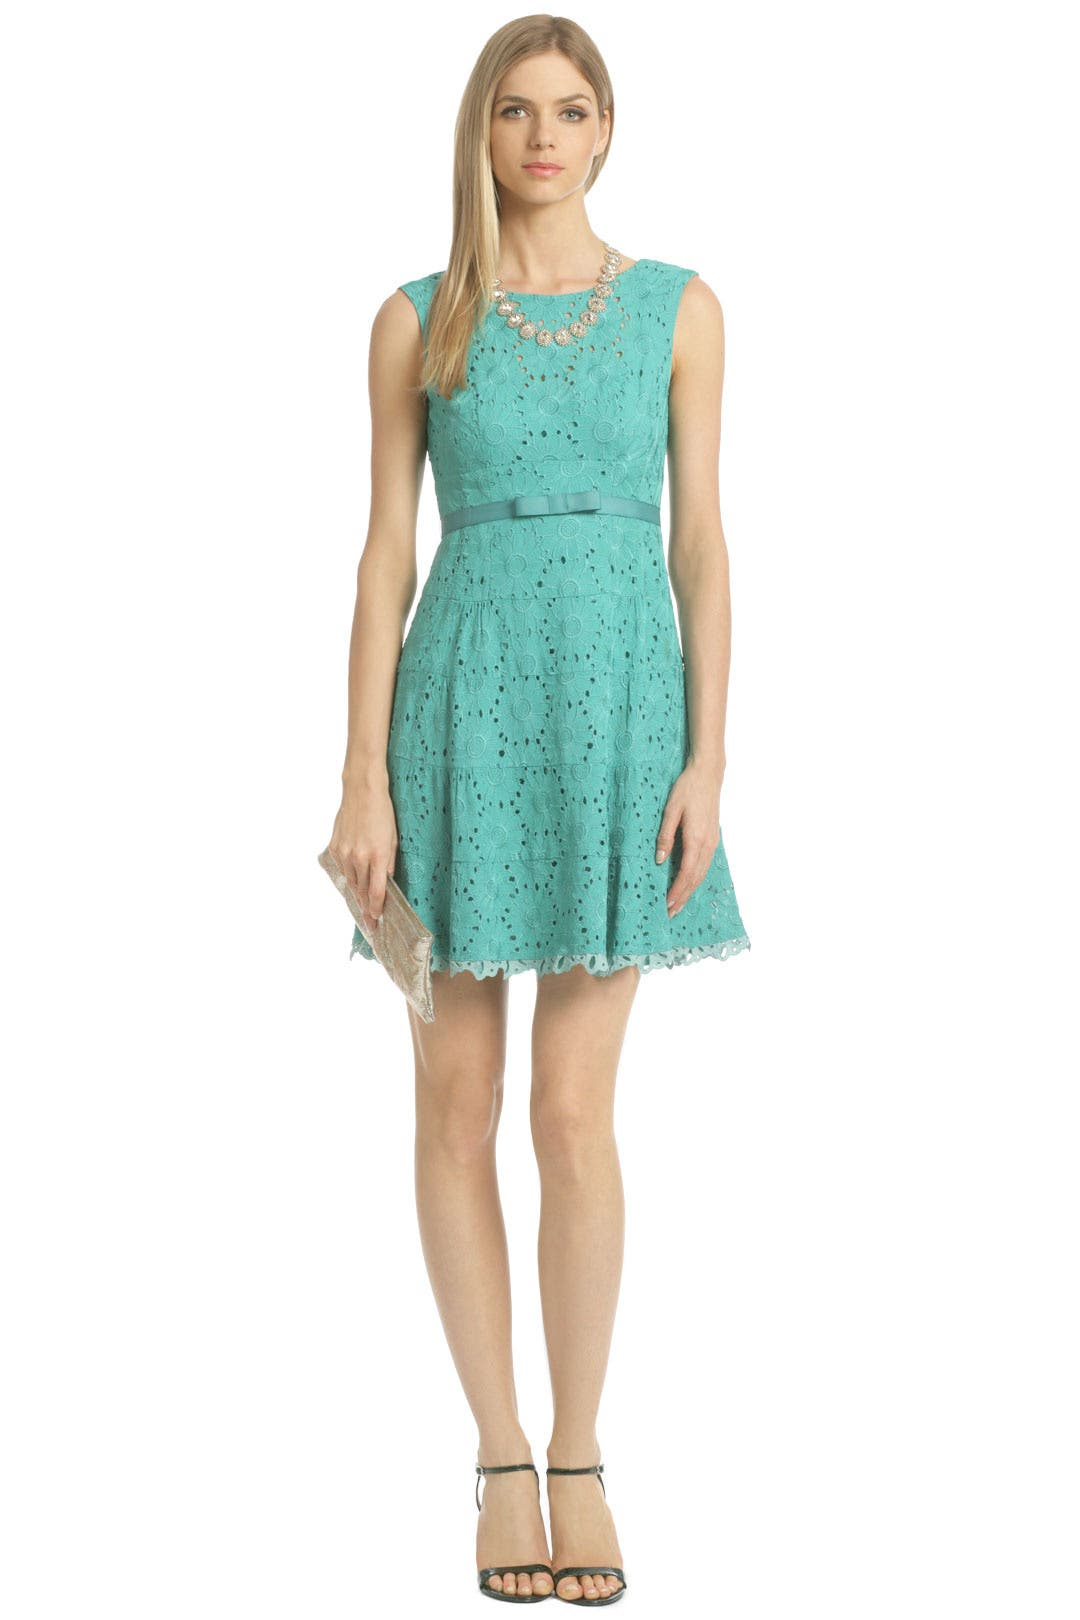 Daisy Lace Dress by Nanette Lepore